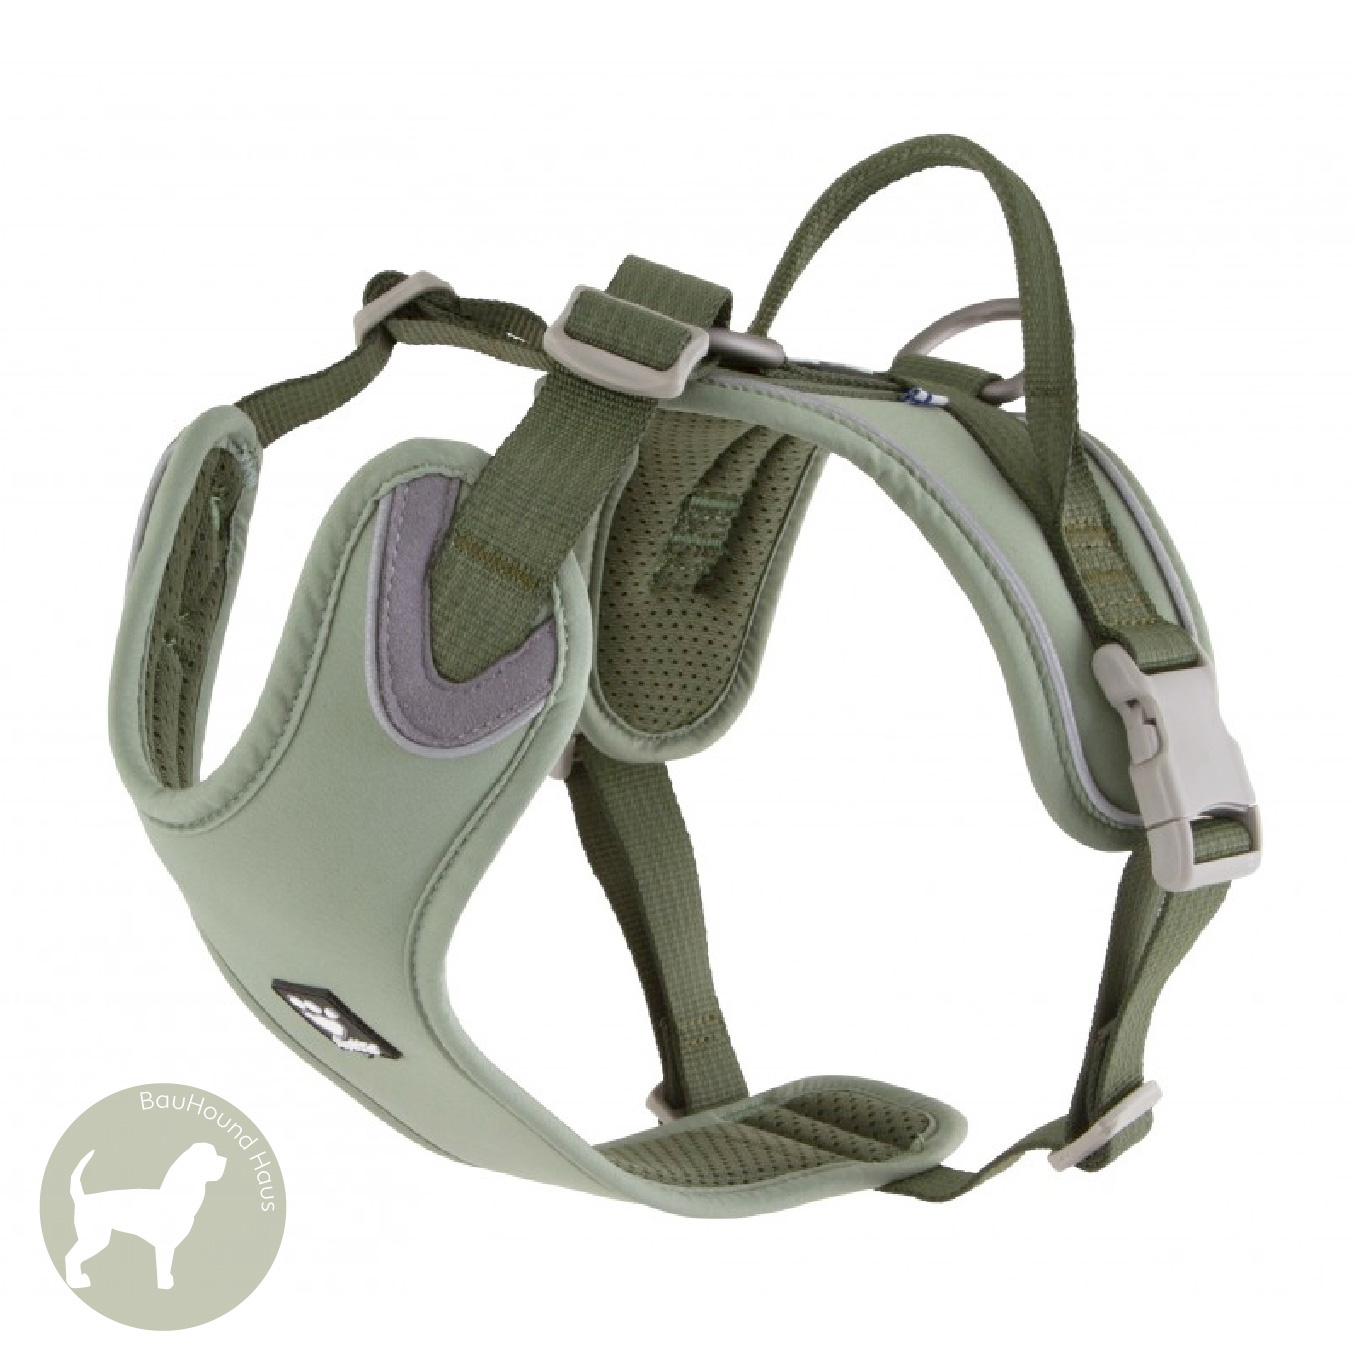 Hurtta Hurtta Weekend Warrior Eco Harness